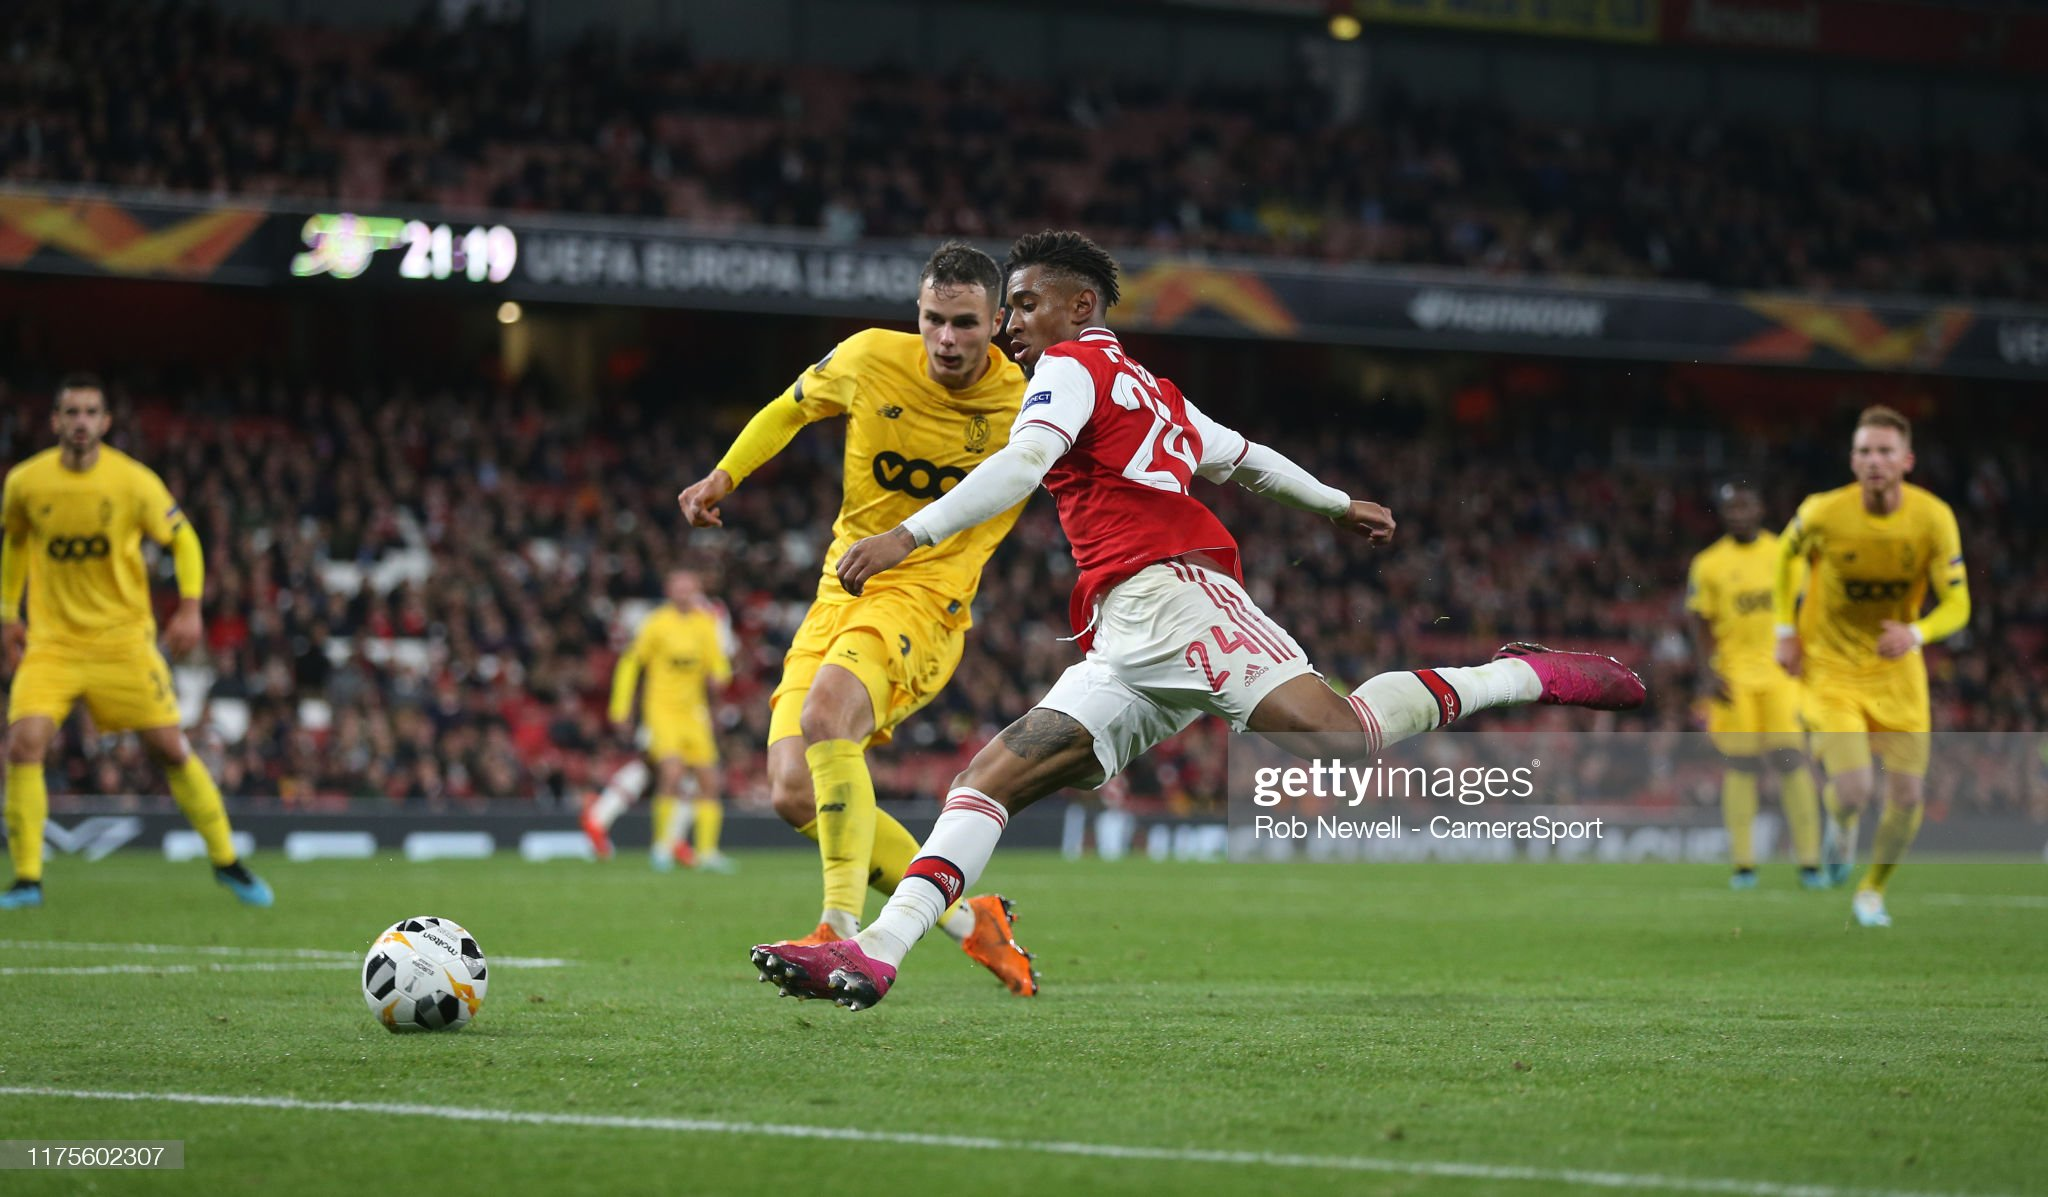 Standard Liege v Arsenal preview, prediction and odds